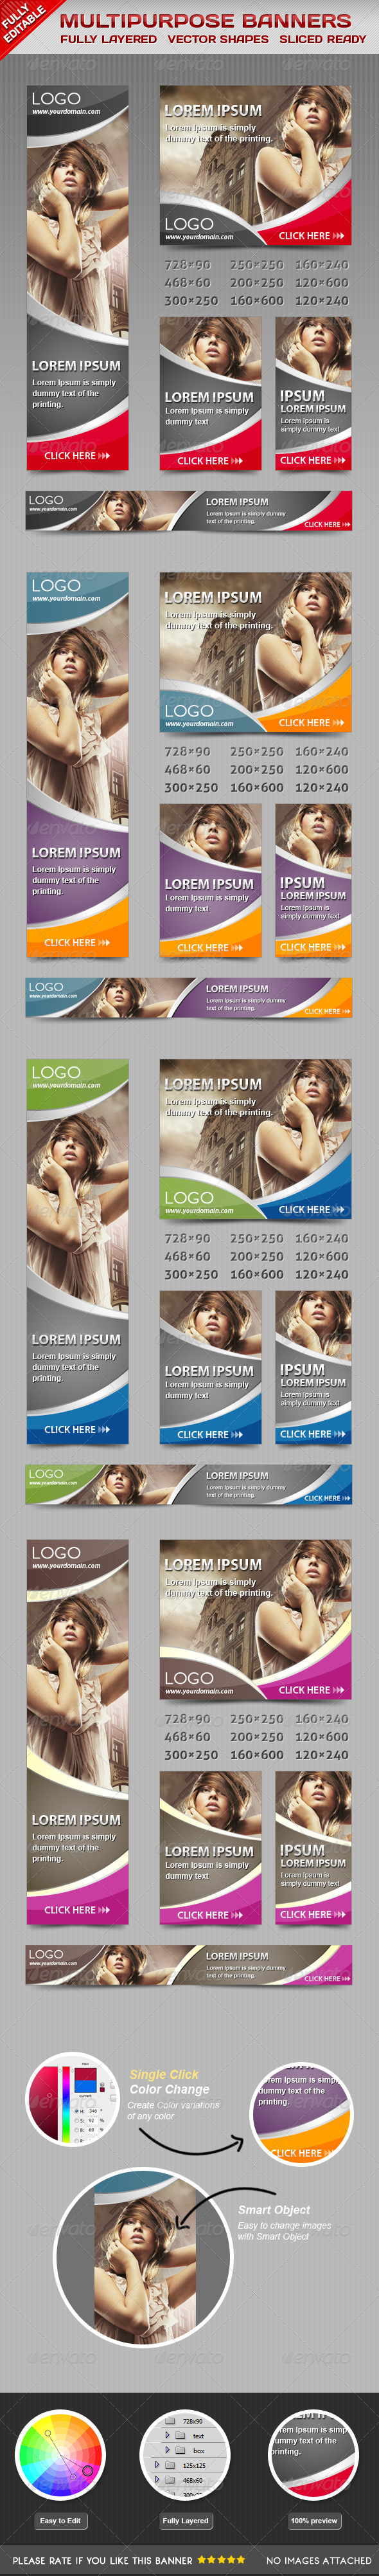 GraphicRiver Multiporpose Glamorous Banners 4604960